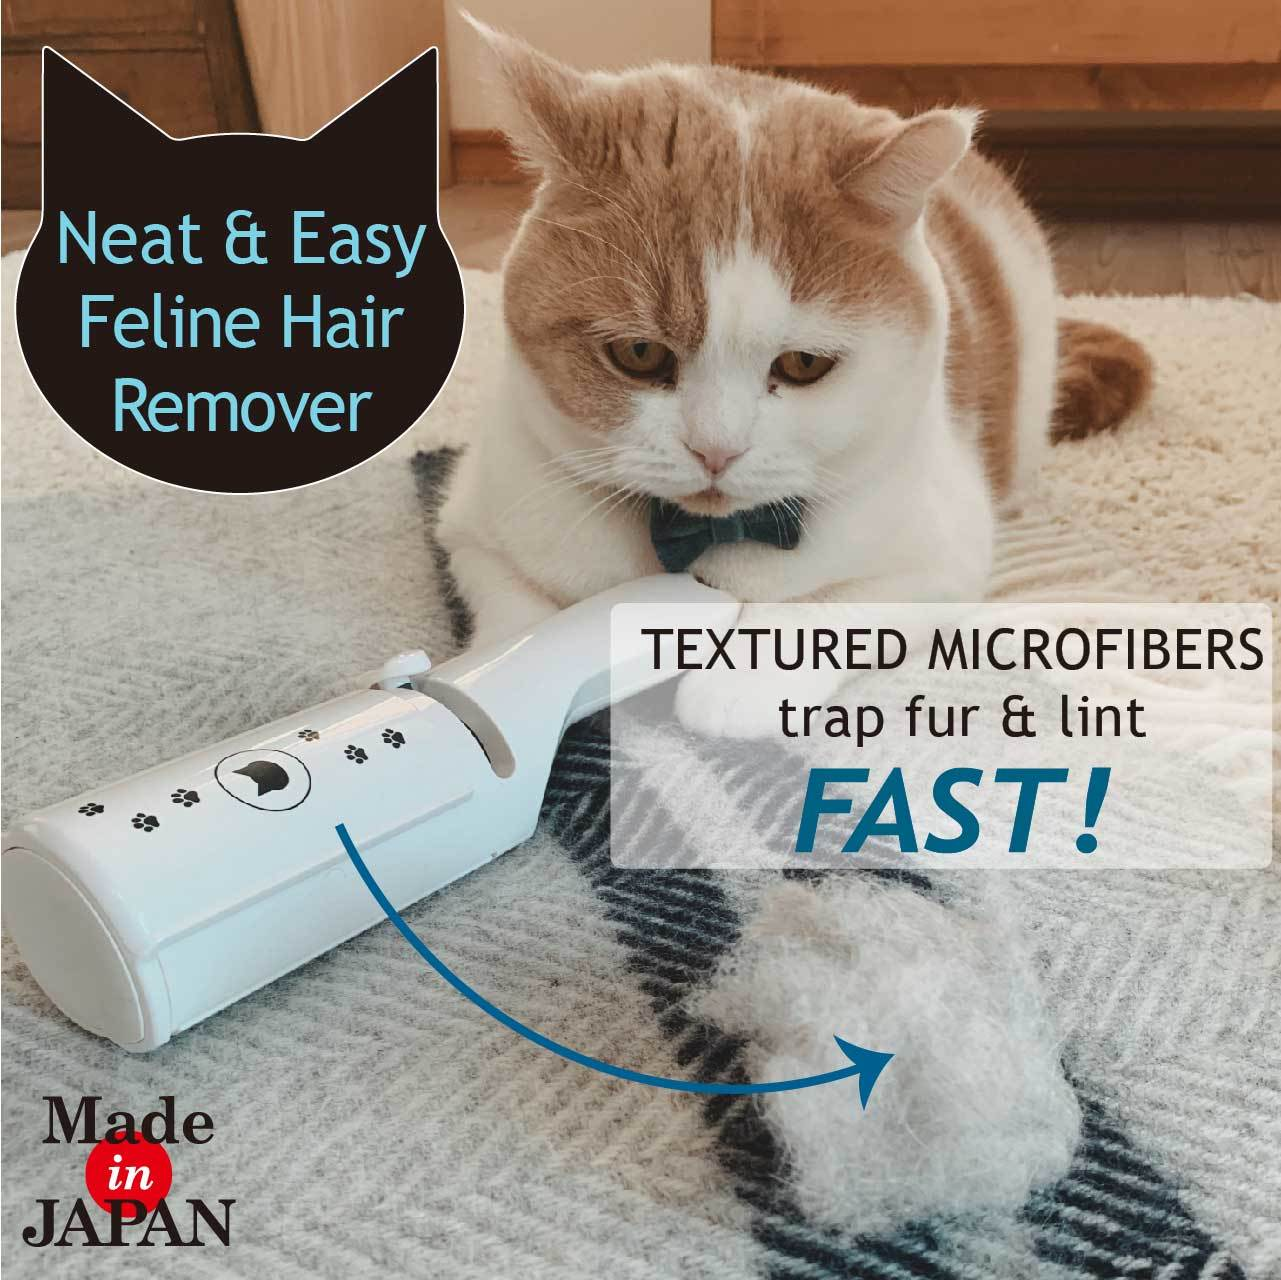 Necoichi Purrfection Neat & Easy Feline Hair Remover